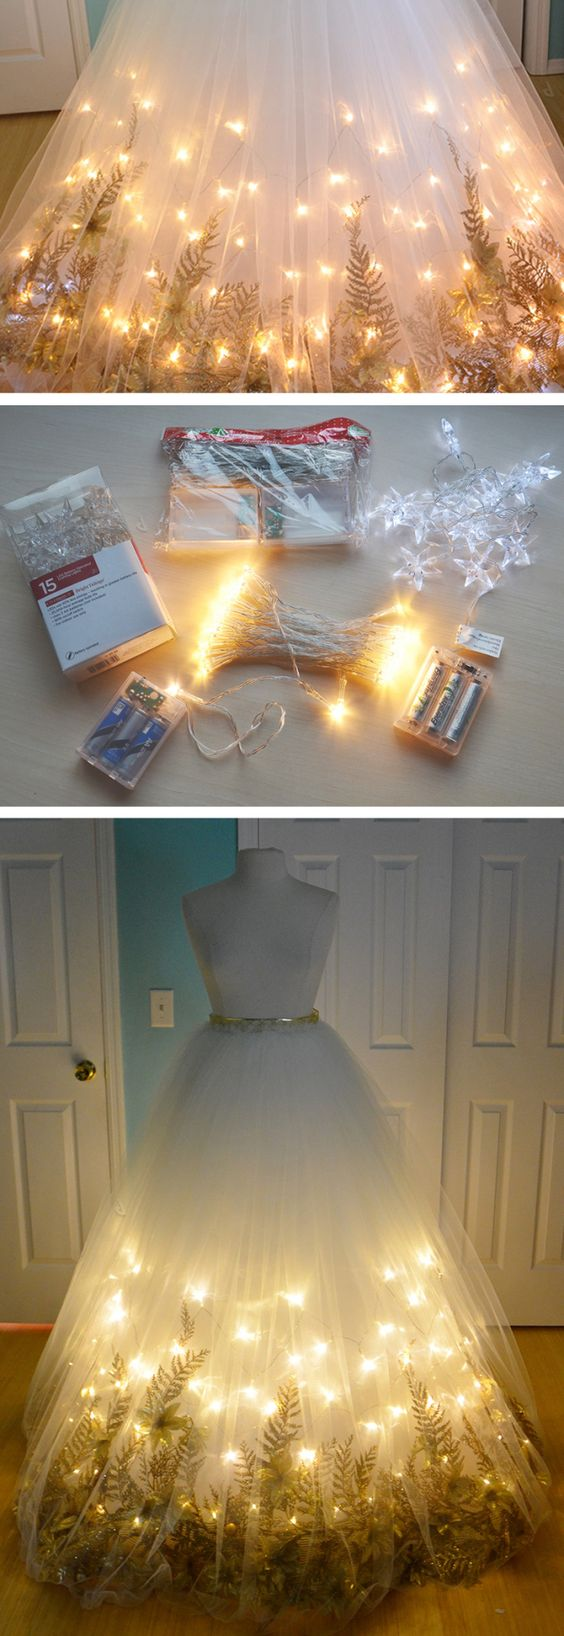 DIY Light Up Fairy Dress.